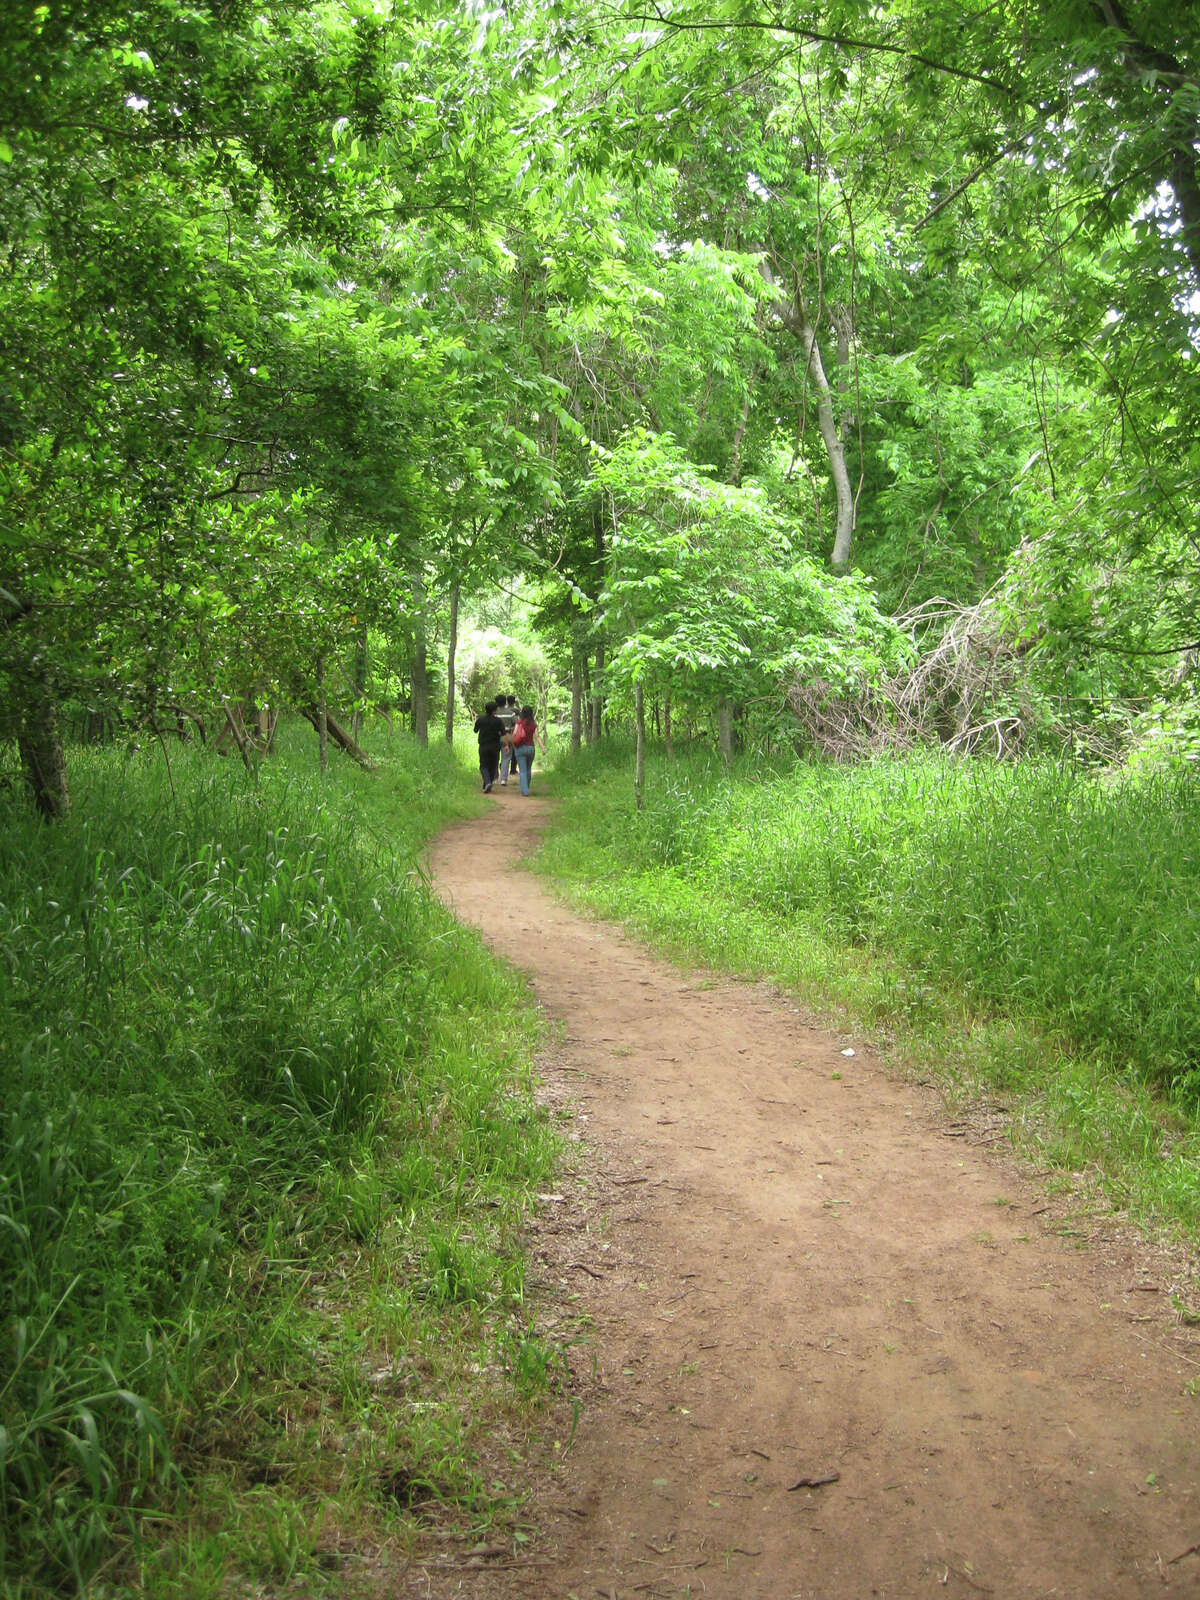 Stephen F. Austin State Park near Sealy is known for its marked paths through the forest.